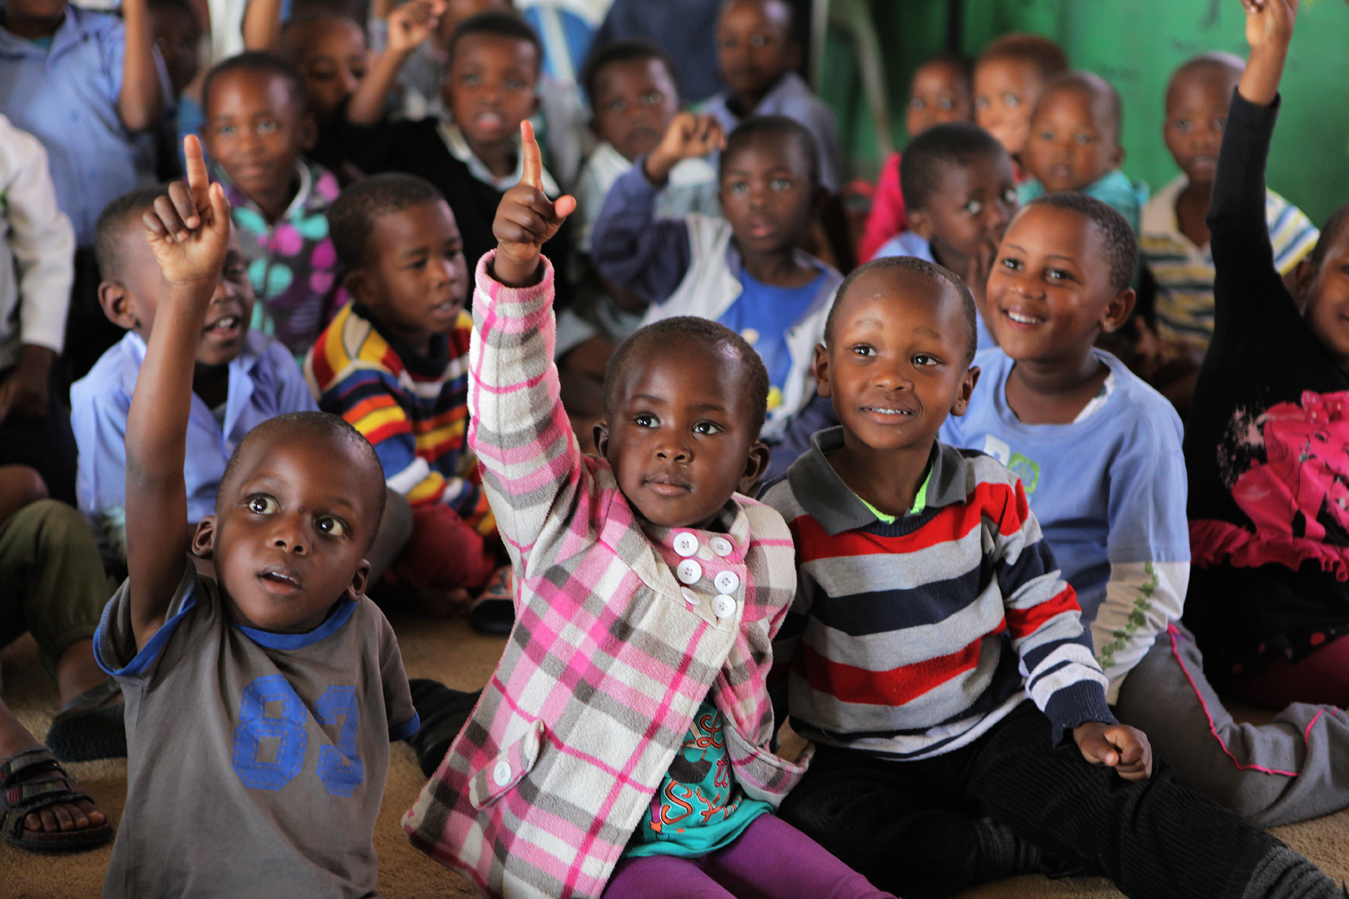 The Grade RR class at the Zamani ECD Centre on the outskirts of Durban in the eThekwini district. Principal Ethel Ngcobo first opened as a crèche in 1995, responding to the need for children to be cared for while their parents were at work. After years of dedication and support from ABSA, the Outreach Foundation and Save the Children, she built a proper ECD centre. Over 92% of preschool children in KwaZulu-Natal attend unregistered ECD centres (crèches). Save the Children, operating in KZN for over 50 years, recognised the need to support crèches in the area with better management skills and access to learning materials, as well as running the crèche forums and supporting crèches with registration to become ECD centres.